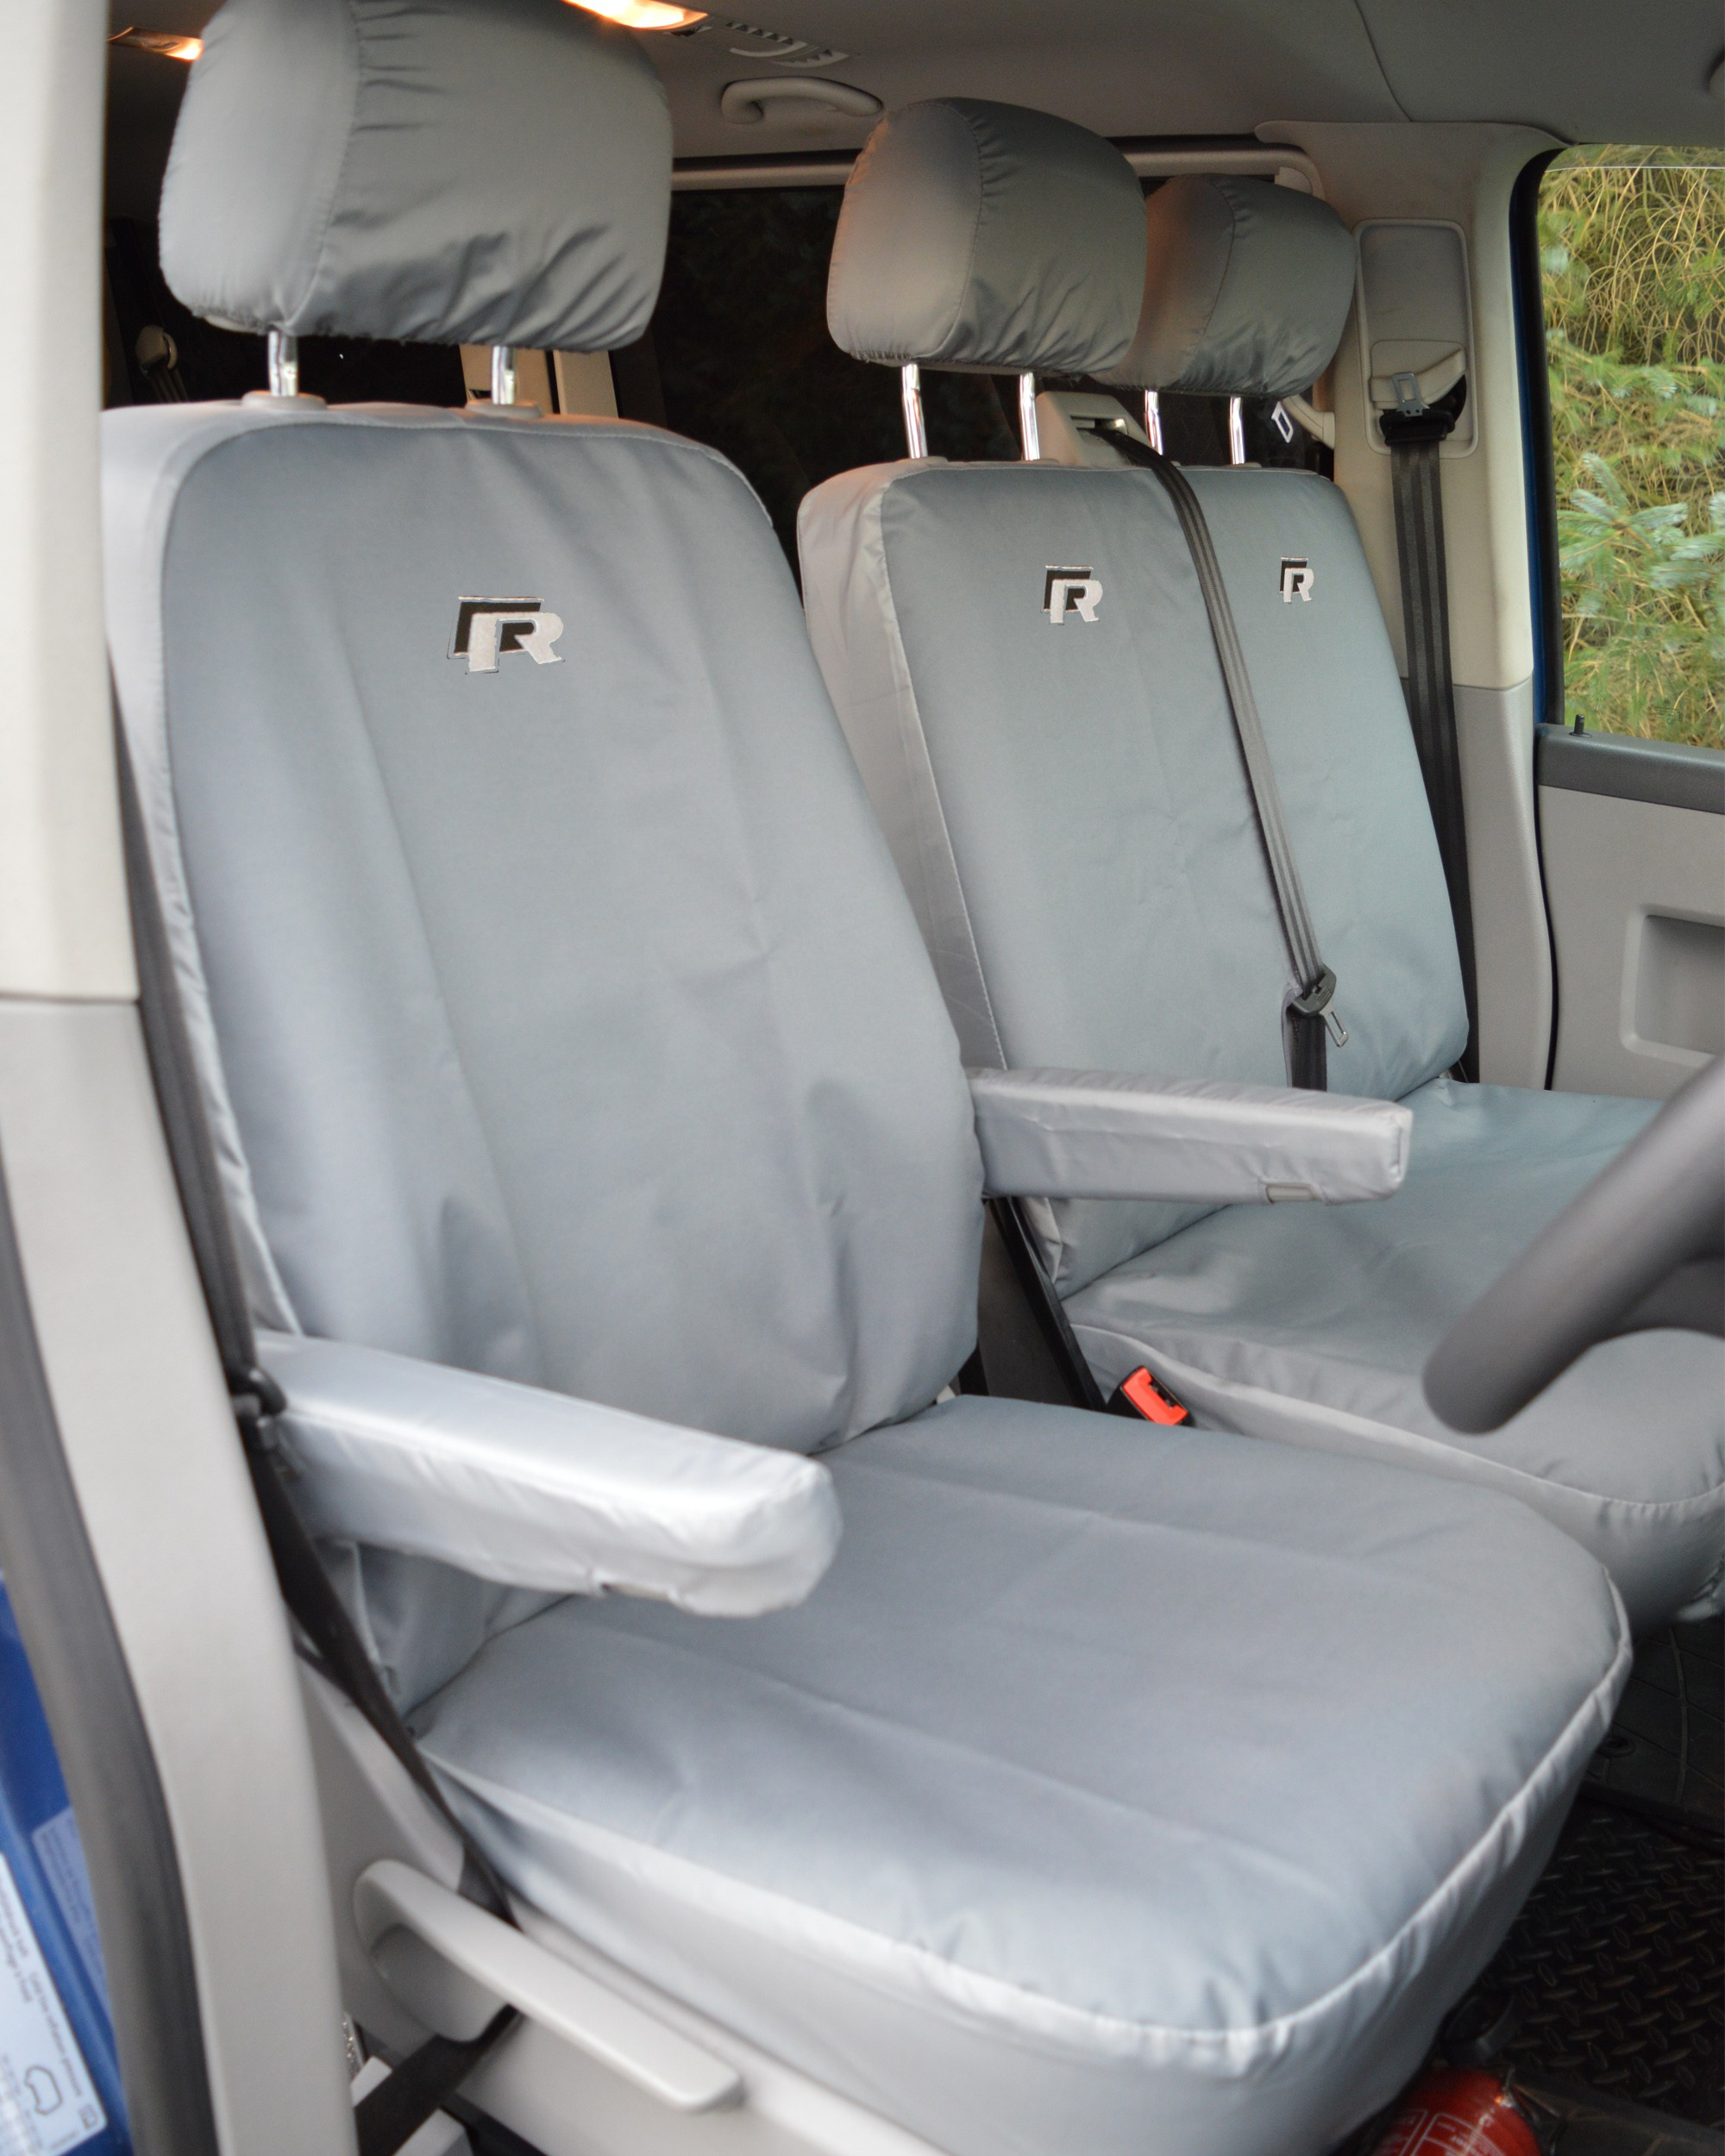 Volkswagen VW Transporter T5 R Line Heavy Duty Van Seat Covers